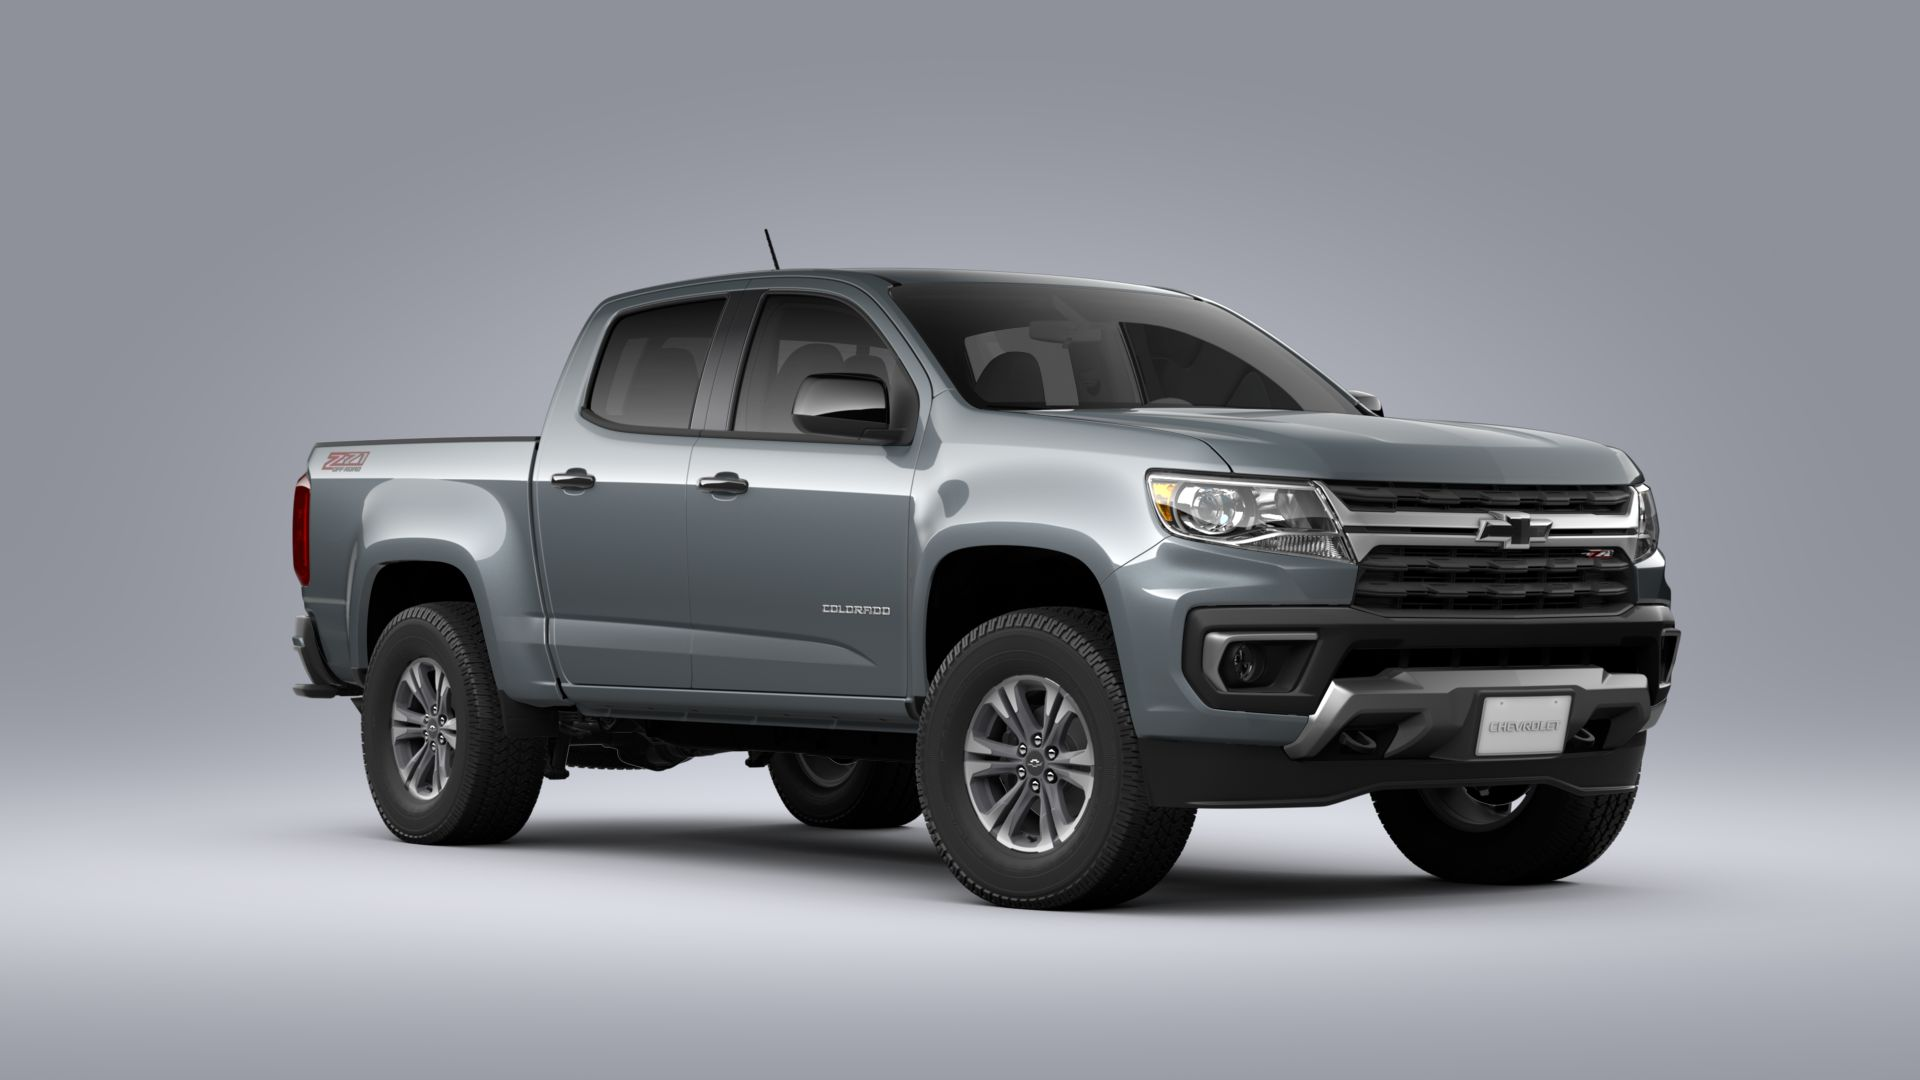 New 2021 Chevrolet Colorado Z71 FOUR WHEEL DRIVE Crew Cab